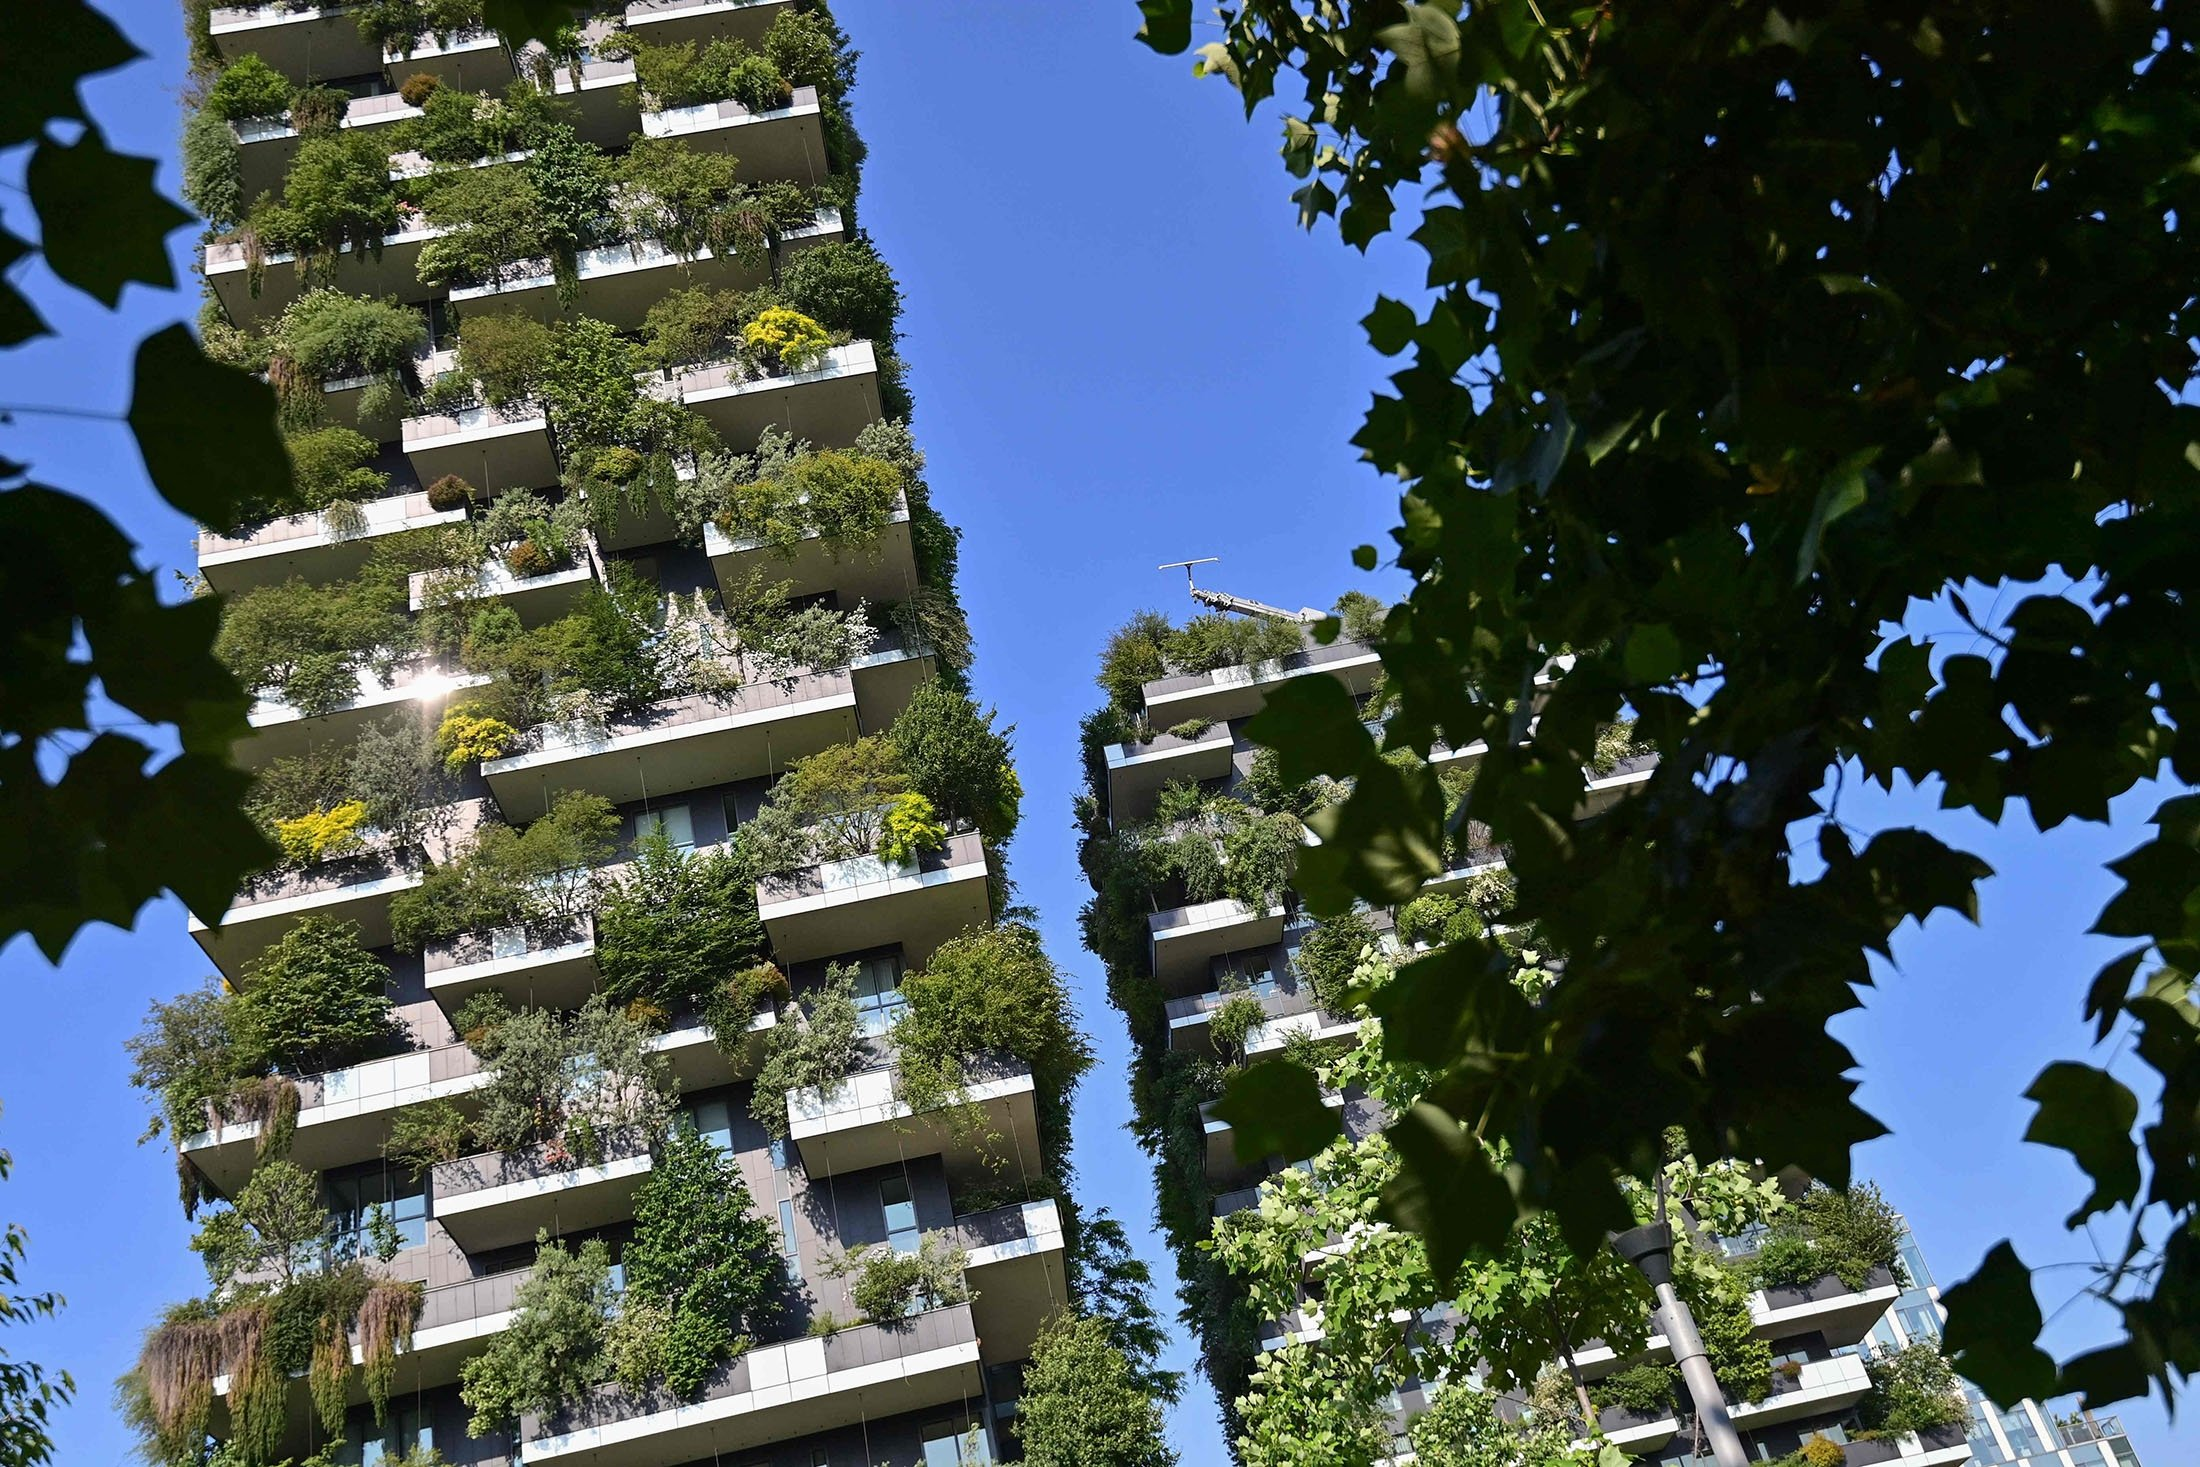 The architectural complex called Vertical forest (Bosco Verticale) designed by Studio Boeri can be seen in the modern district of Porta Nuova in Milan, Italy, June 2, 2021. (AFP Photo)